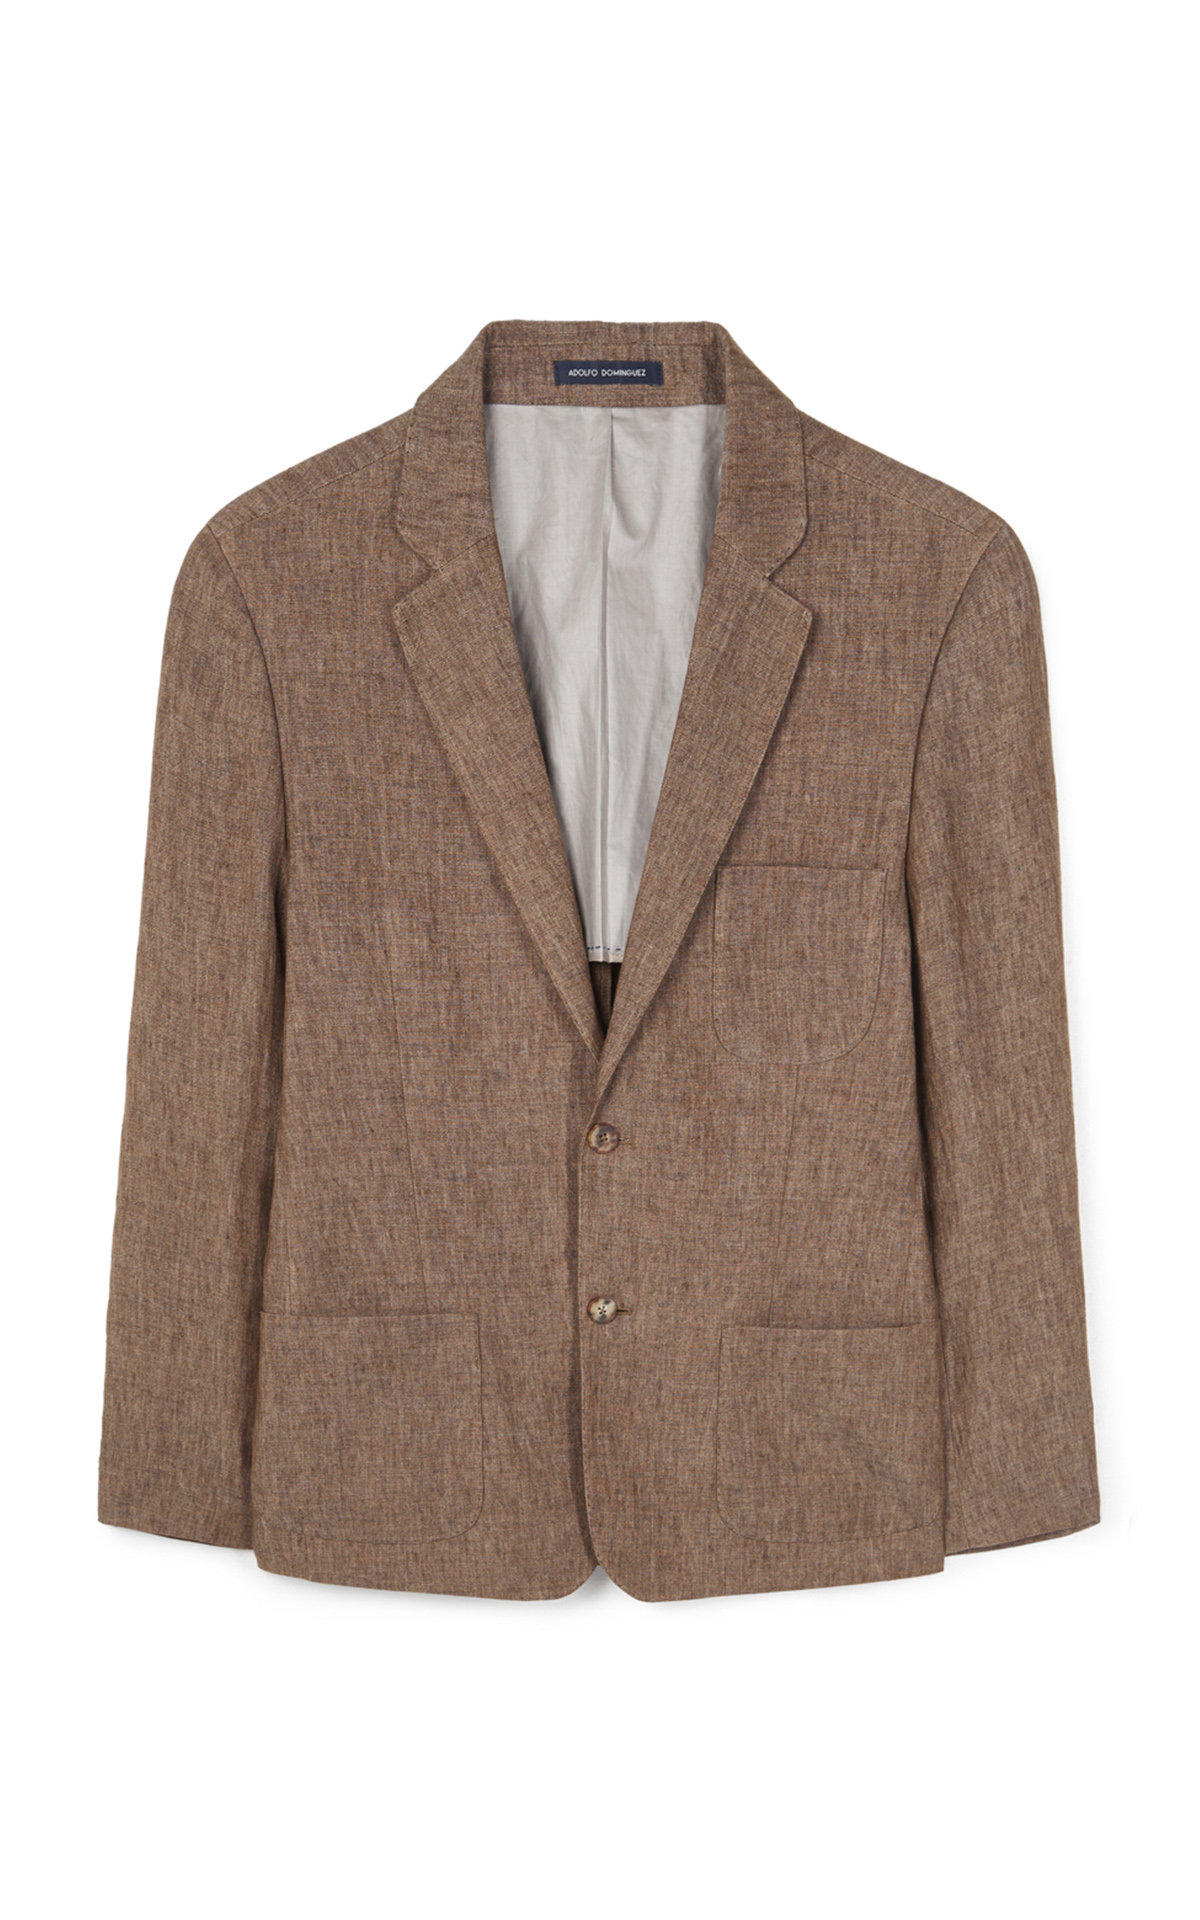 Brown linen blazer Adolfo Dominguez